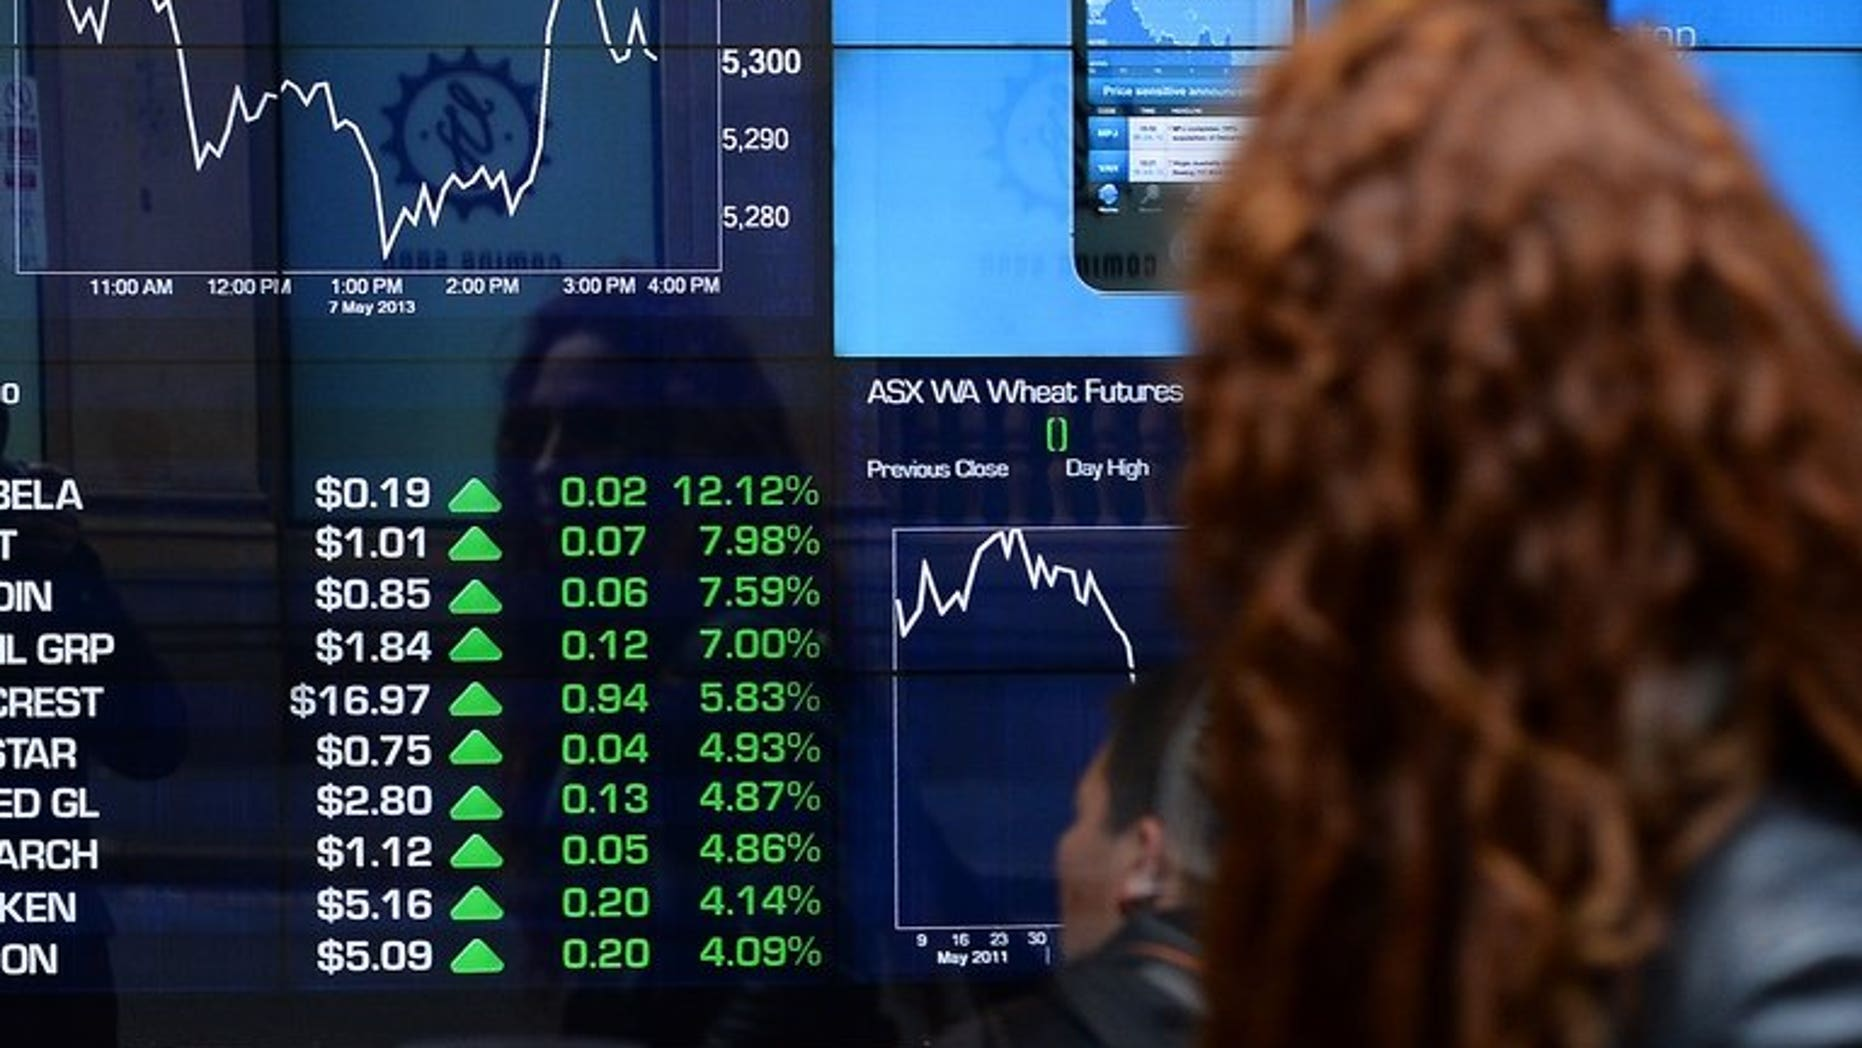 This file photo shows an electronic screen at the Australia Stocks Exchange, in Sydney, on May 7, 2013. An anti-coal activist was charged on Tuesday with issuing a fake press release that temporarily wiped more than Aus$300 million from the share price of Australia's Whitehaven Coal.